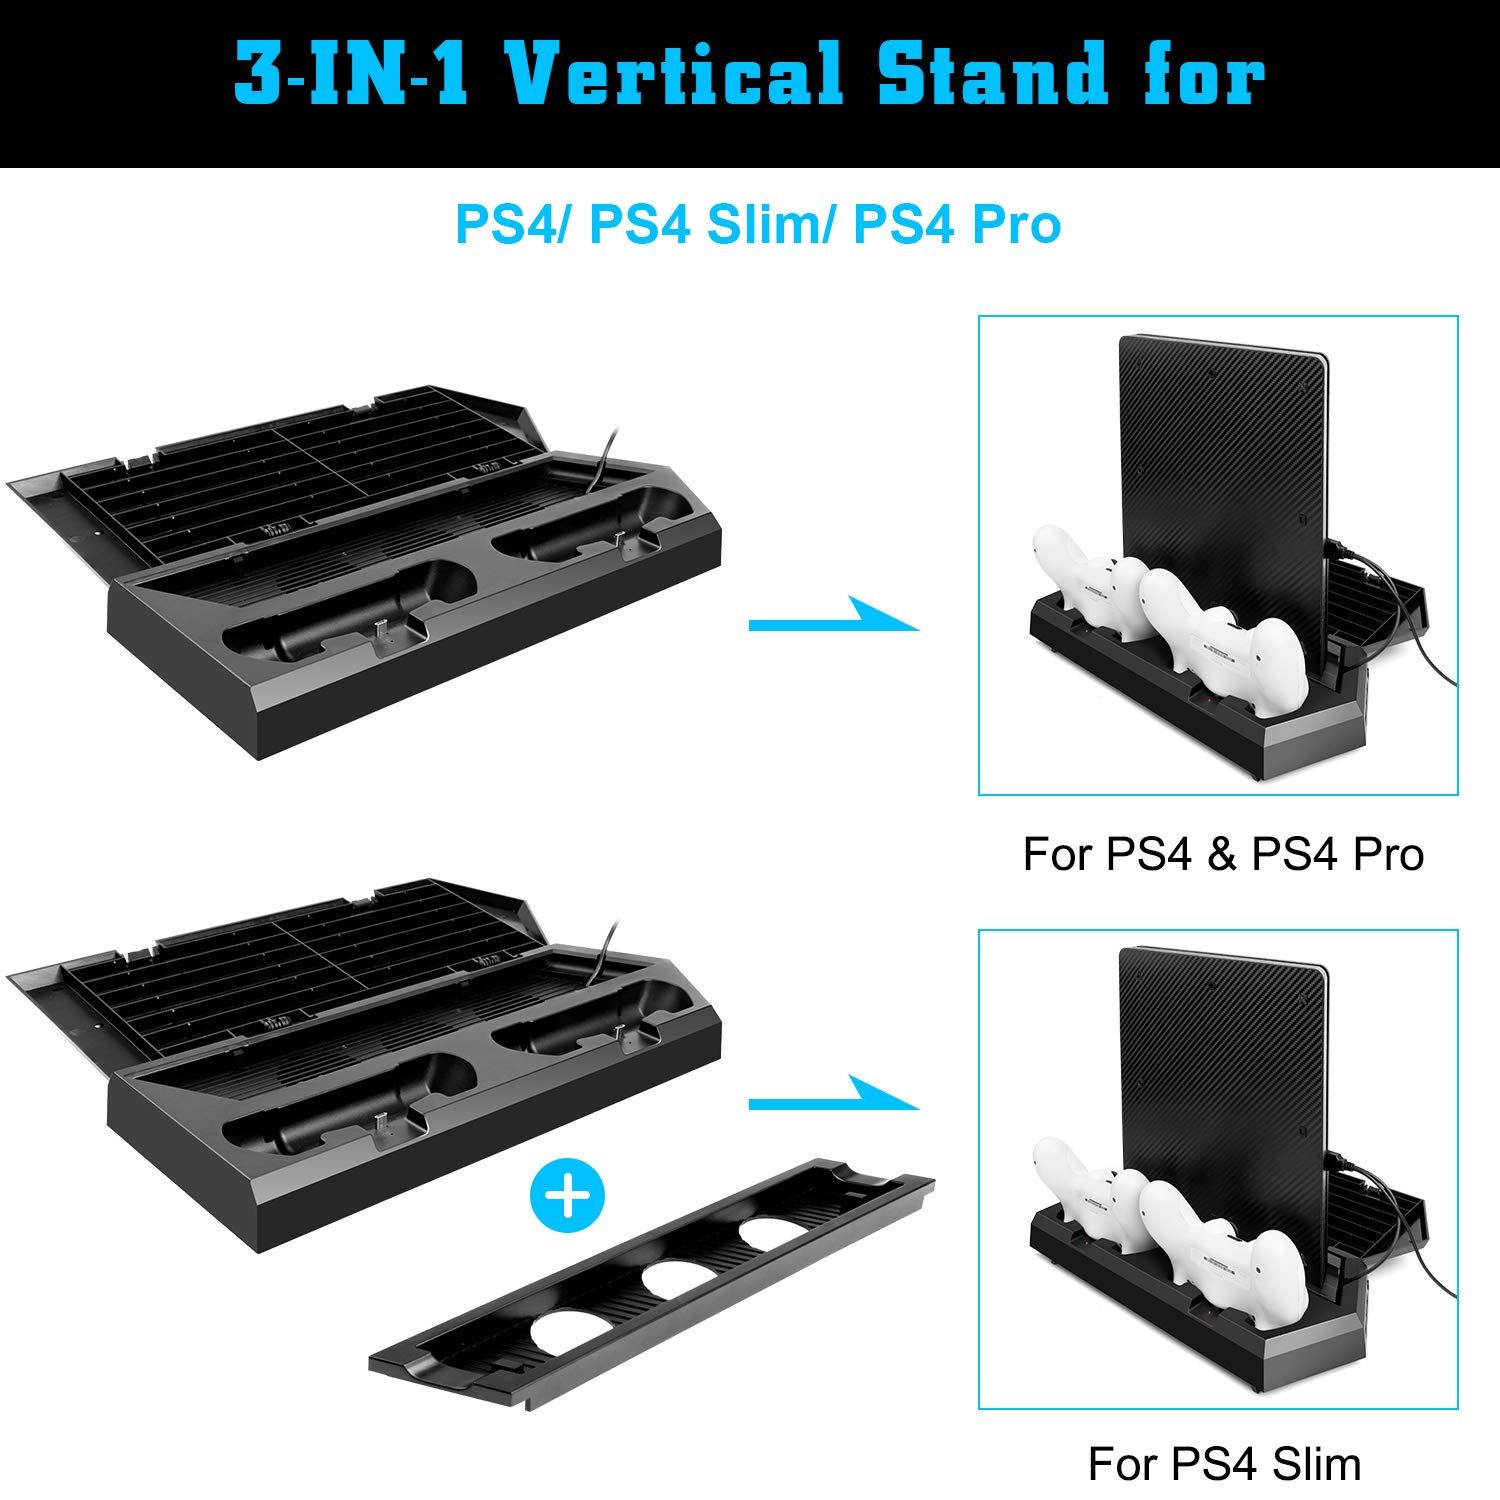 Mocreo Vertical Stand With Cooling Fan For Ps4 Slim Regular